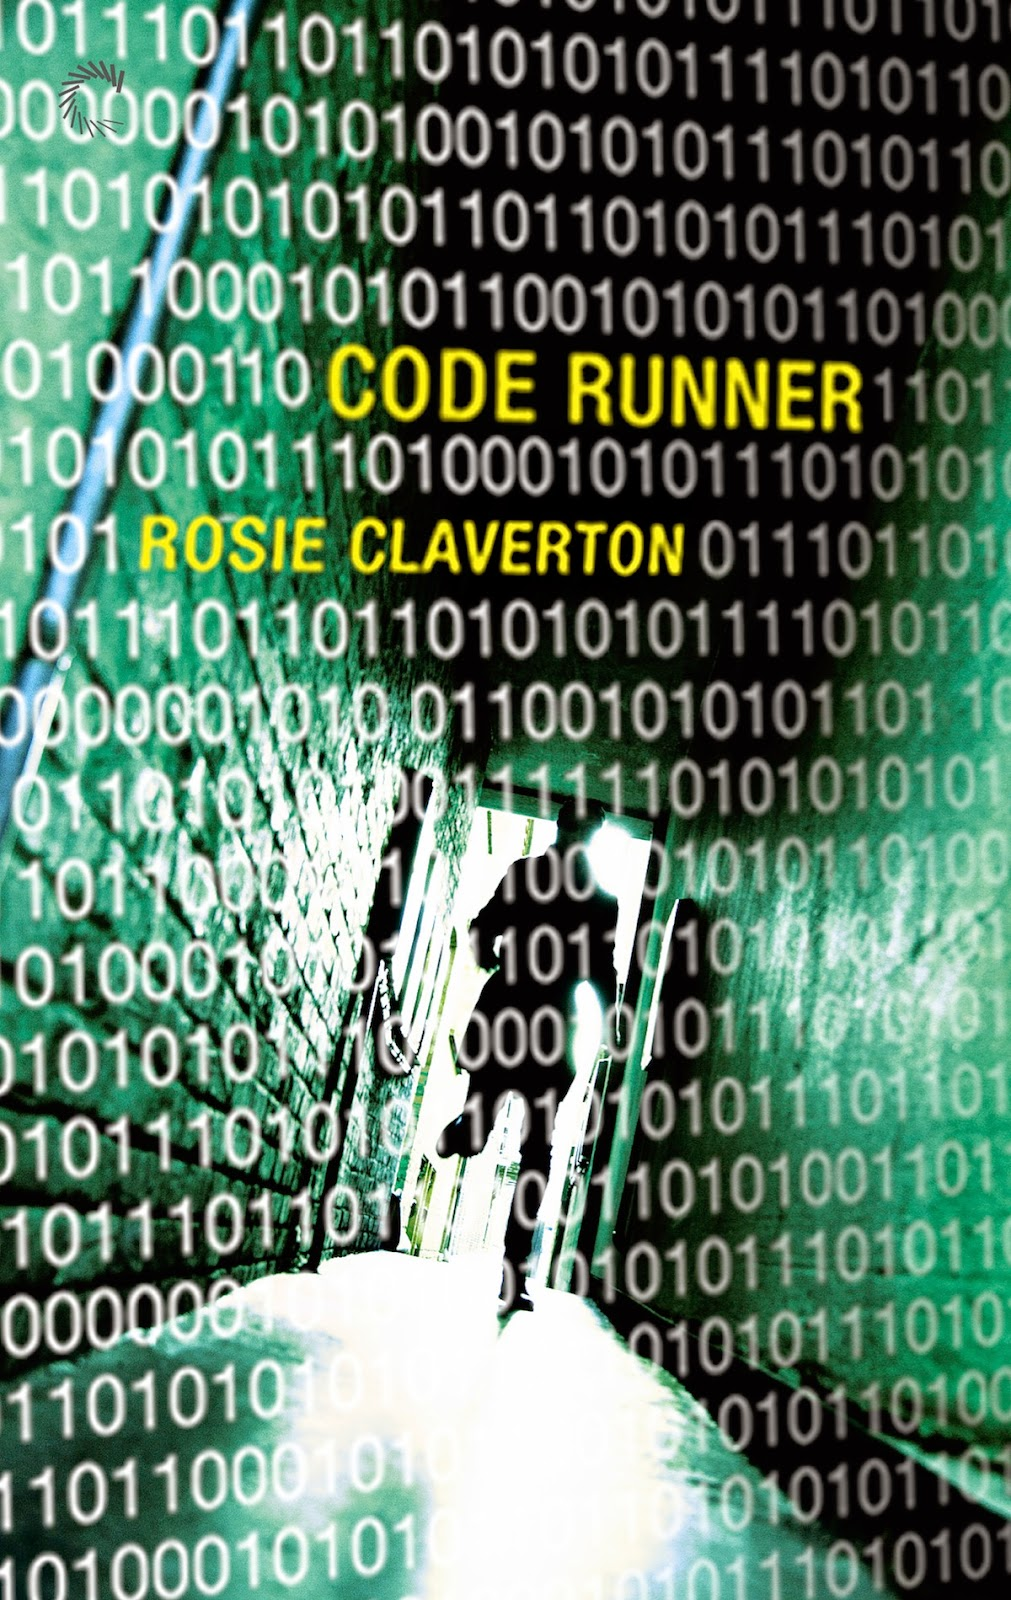 https://www.goodreads.com/book/show/22446876-code-runner